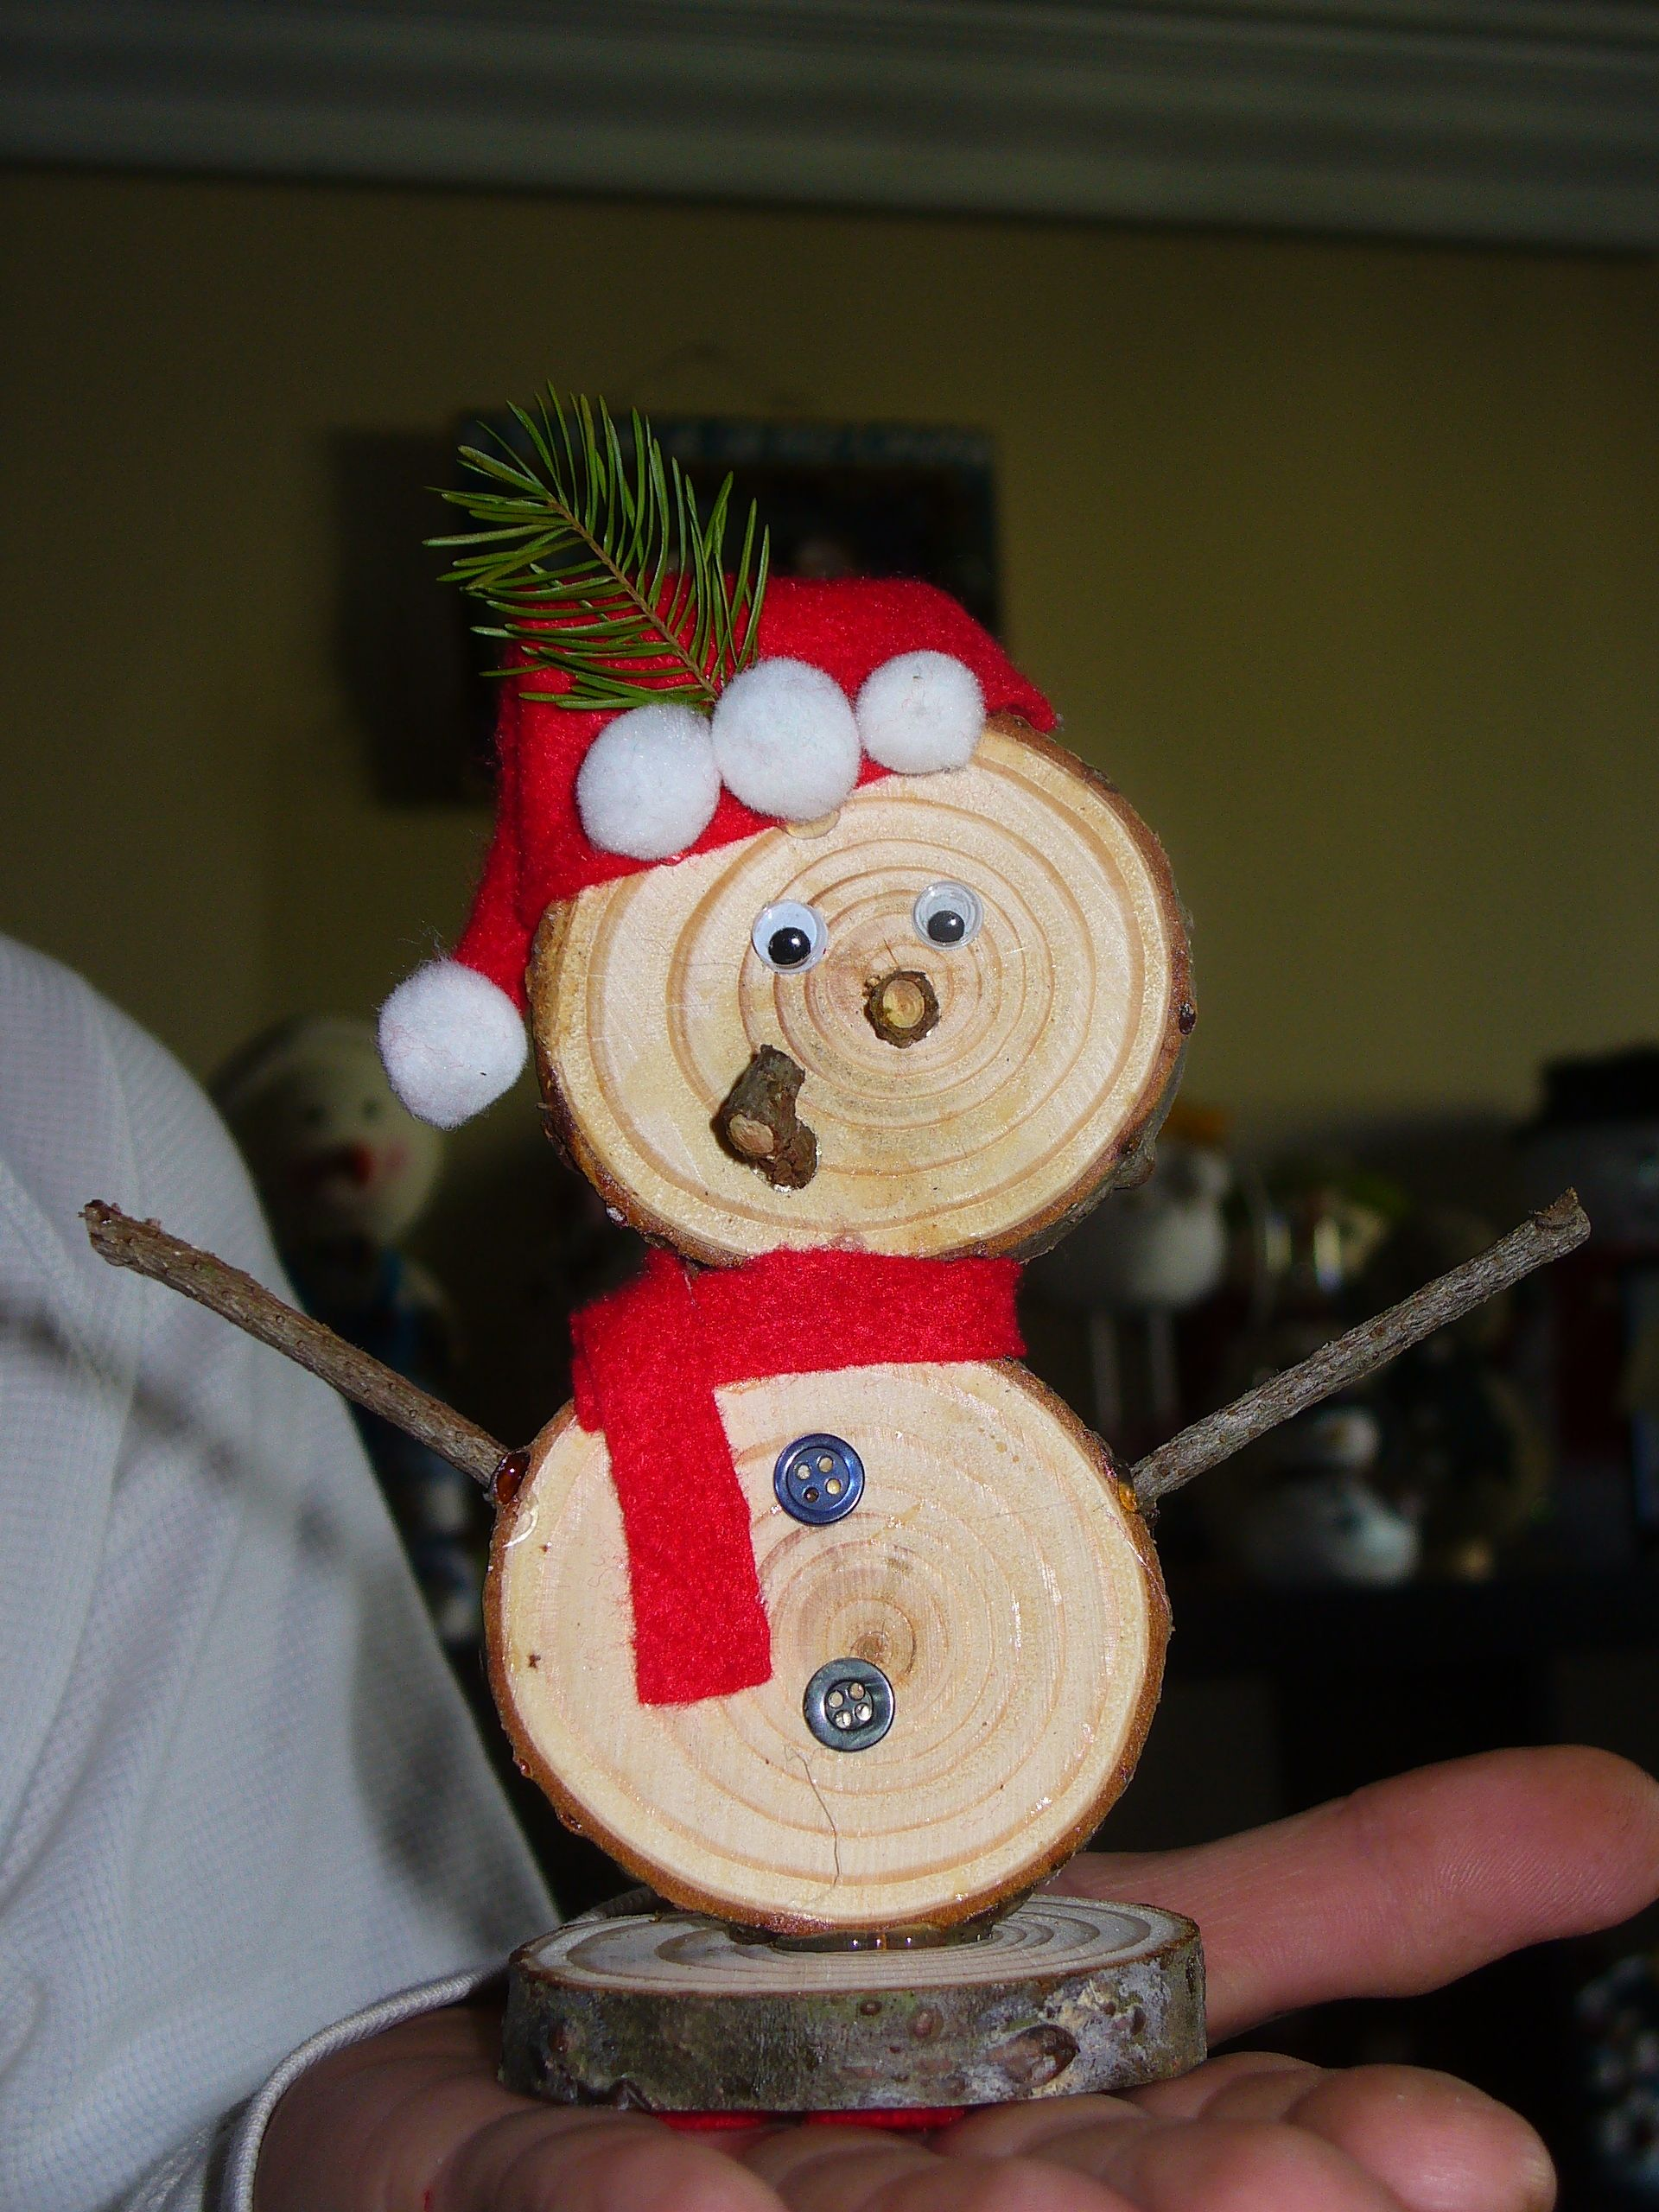 Snowman my Honey made of wood cut from our Christmas Tree